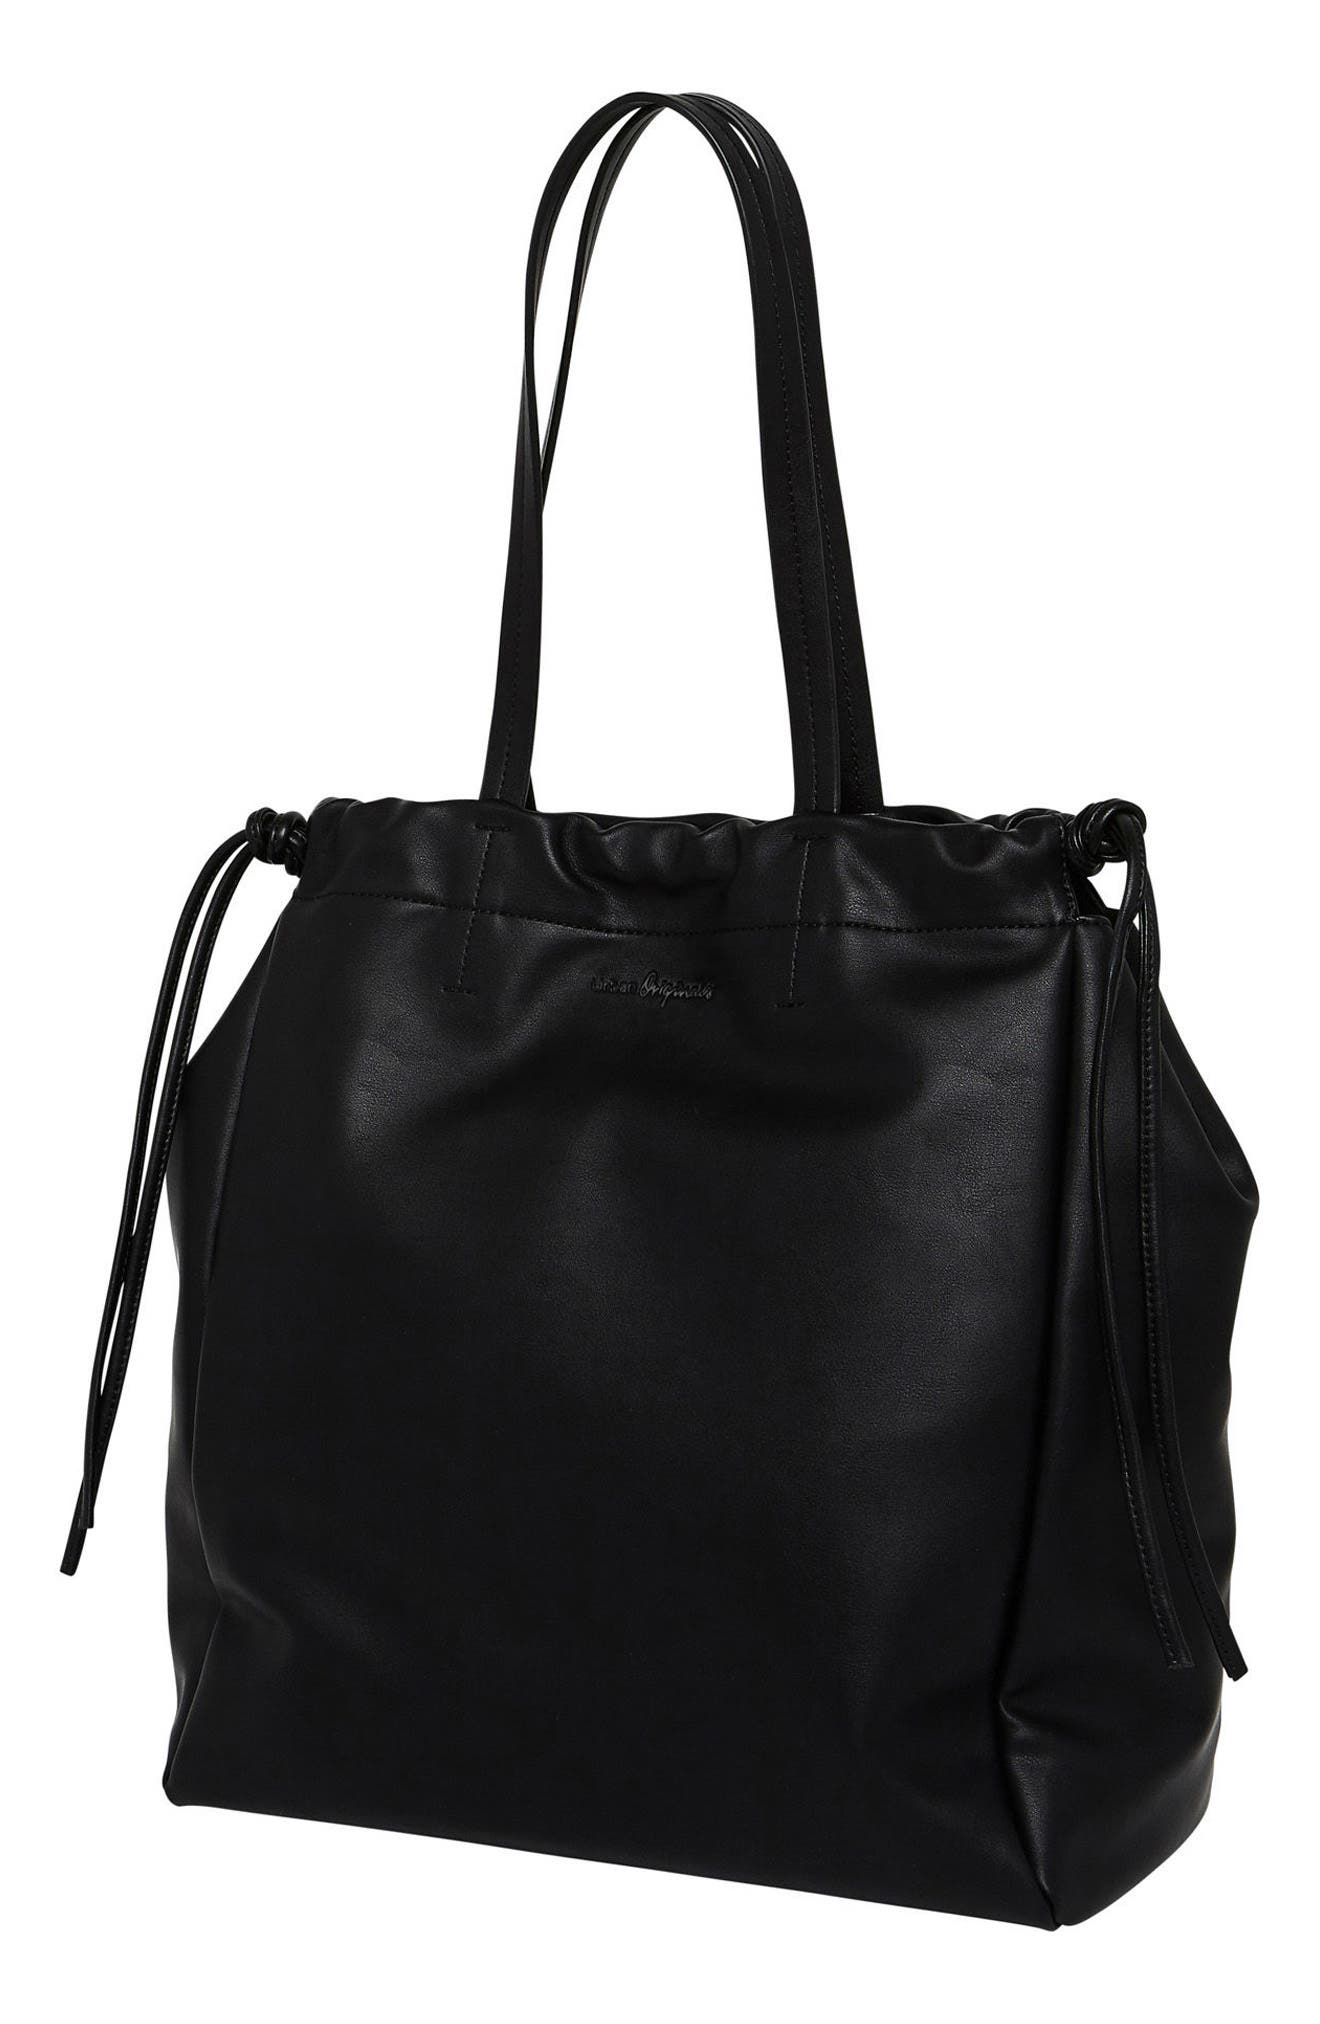 Light & Shadows Vegan Leather Tote,                             Alternate thumbnail 2, color,                             001